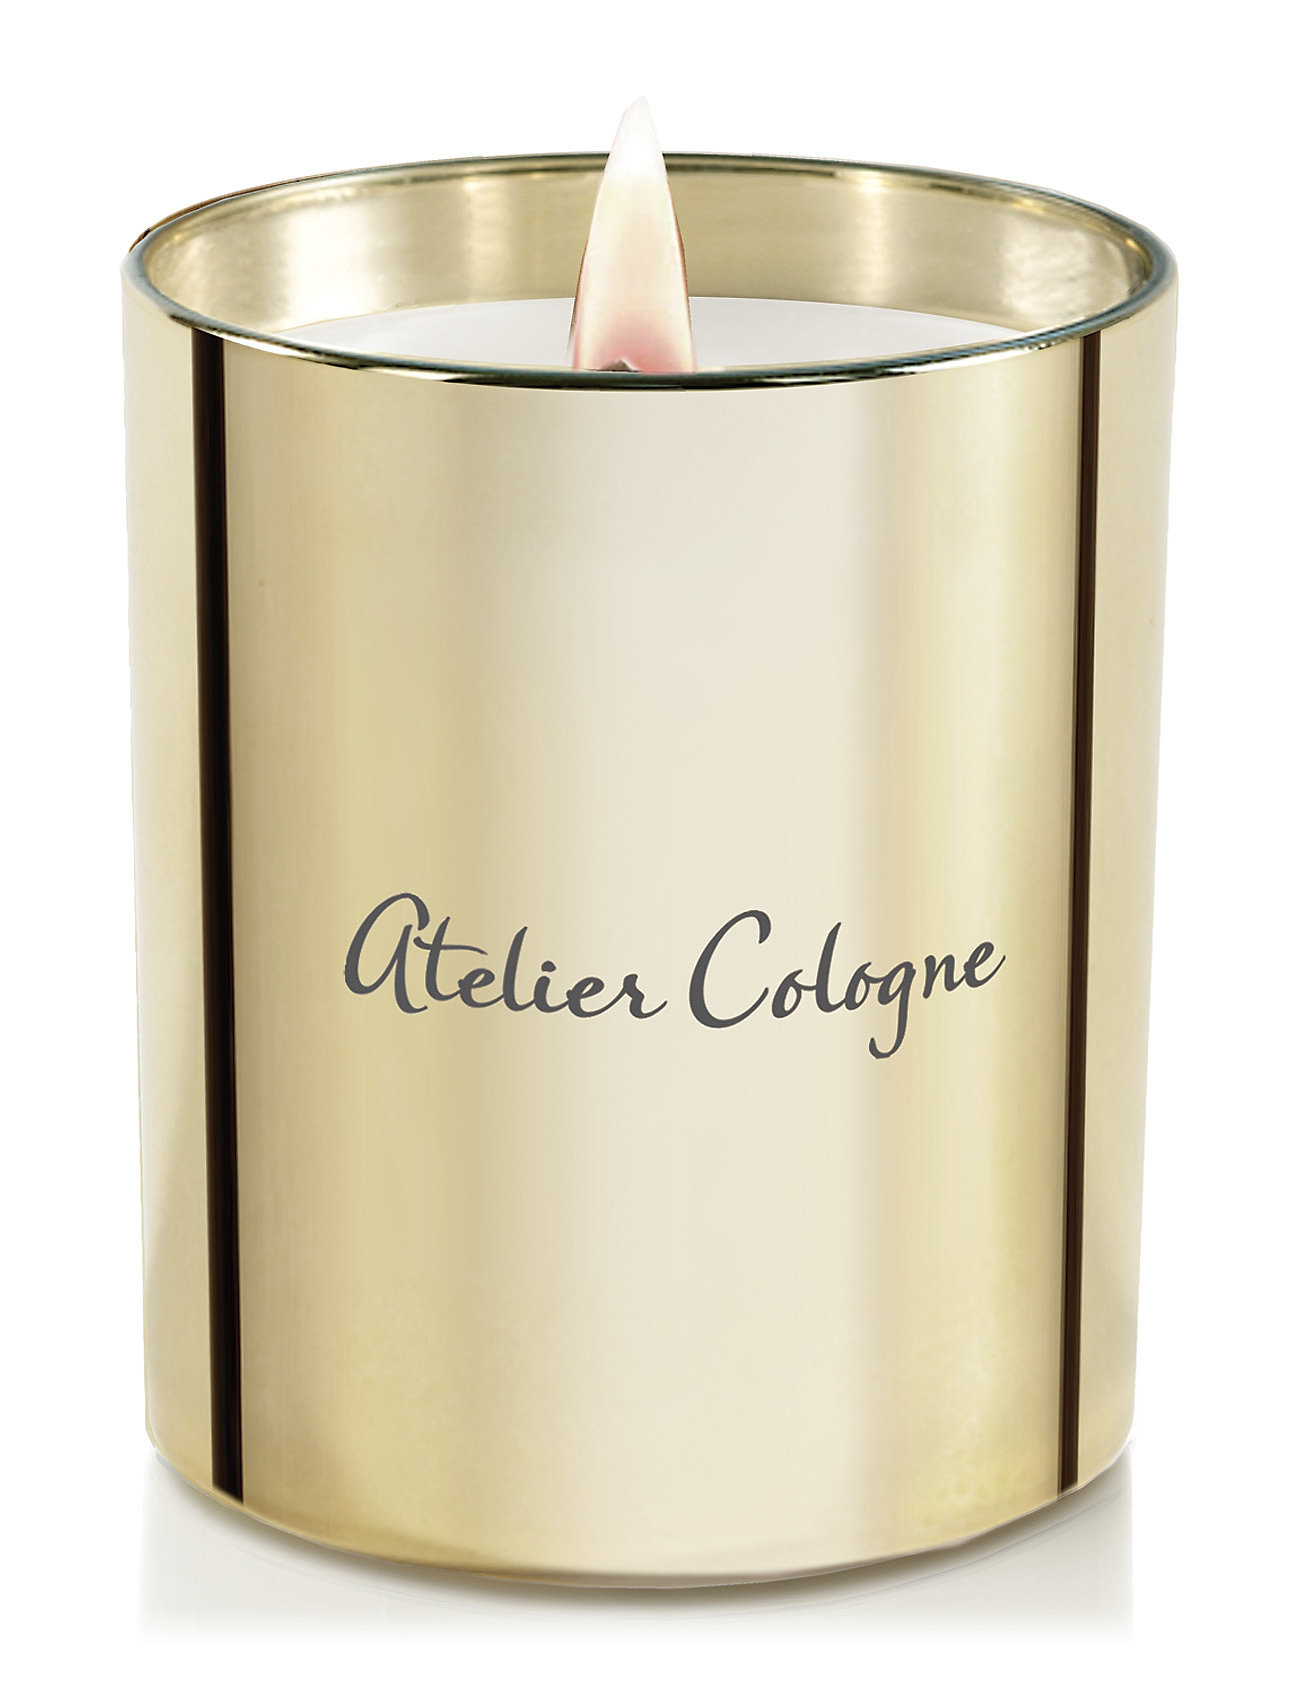 atelier cologne Gold leather candle 190 gr fra boozt.com dk